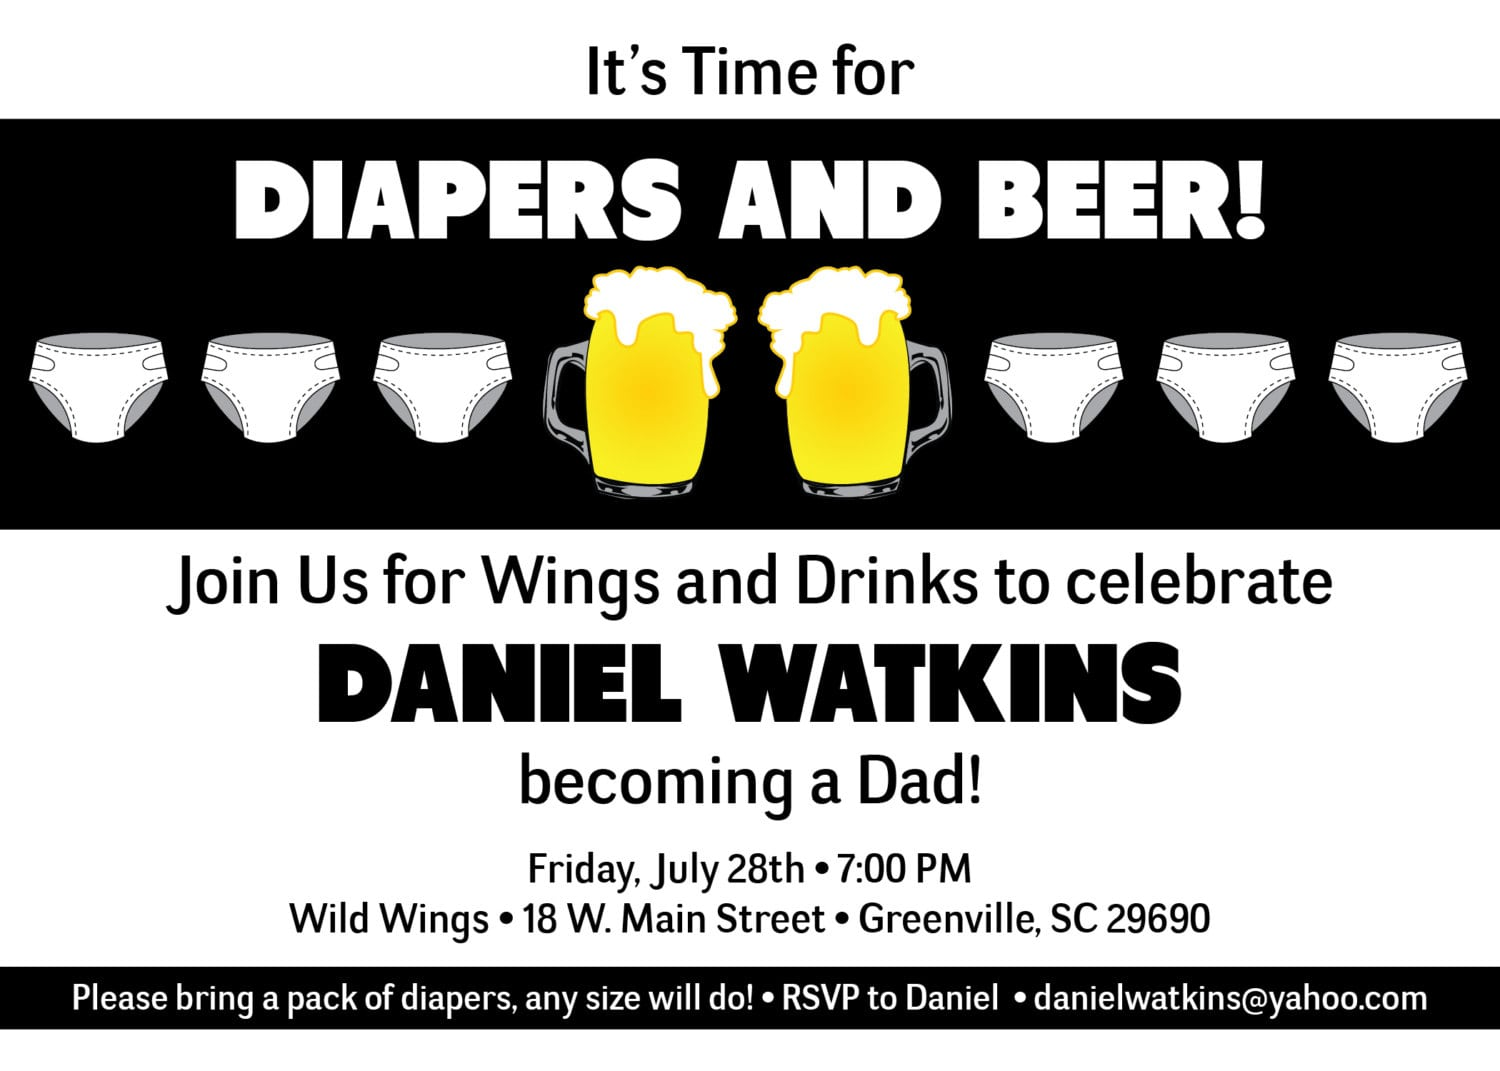 Chuggies, Beer And Diaper Party Invitations, Babies, For Men, Dads